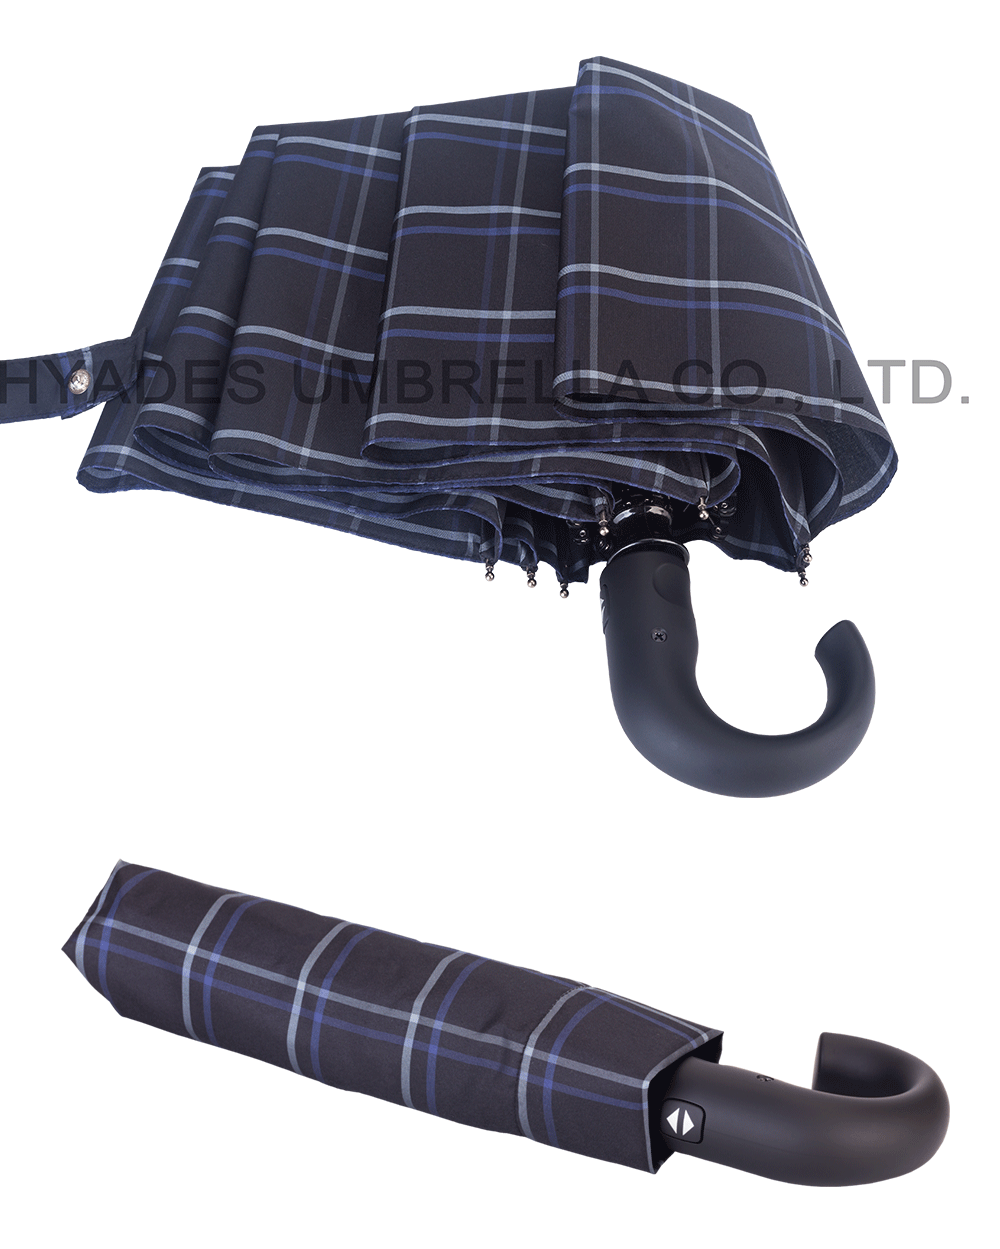 folding umbrella with curved handle